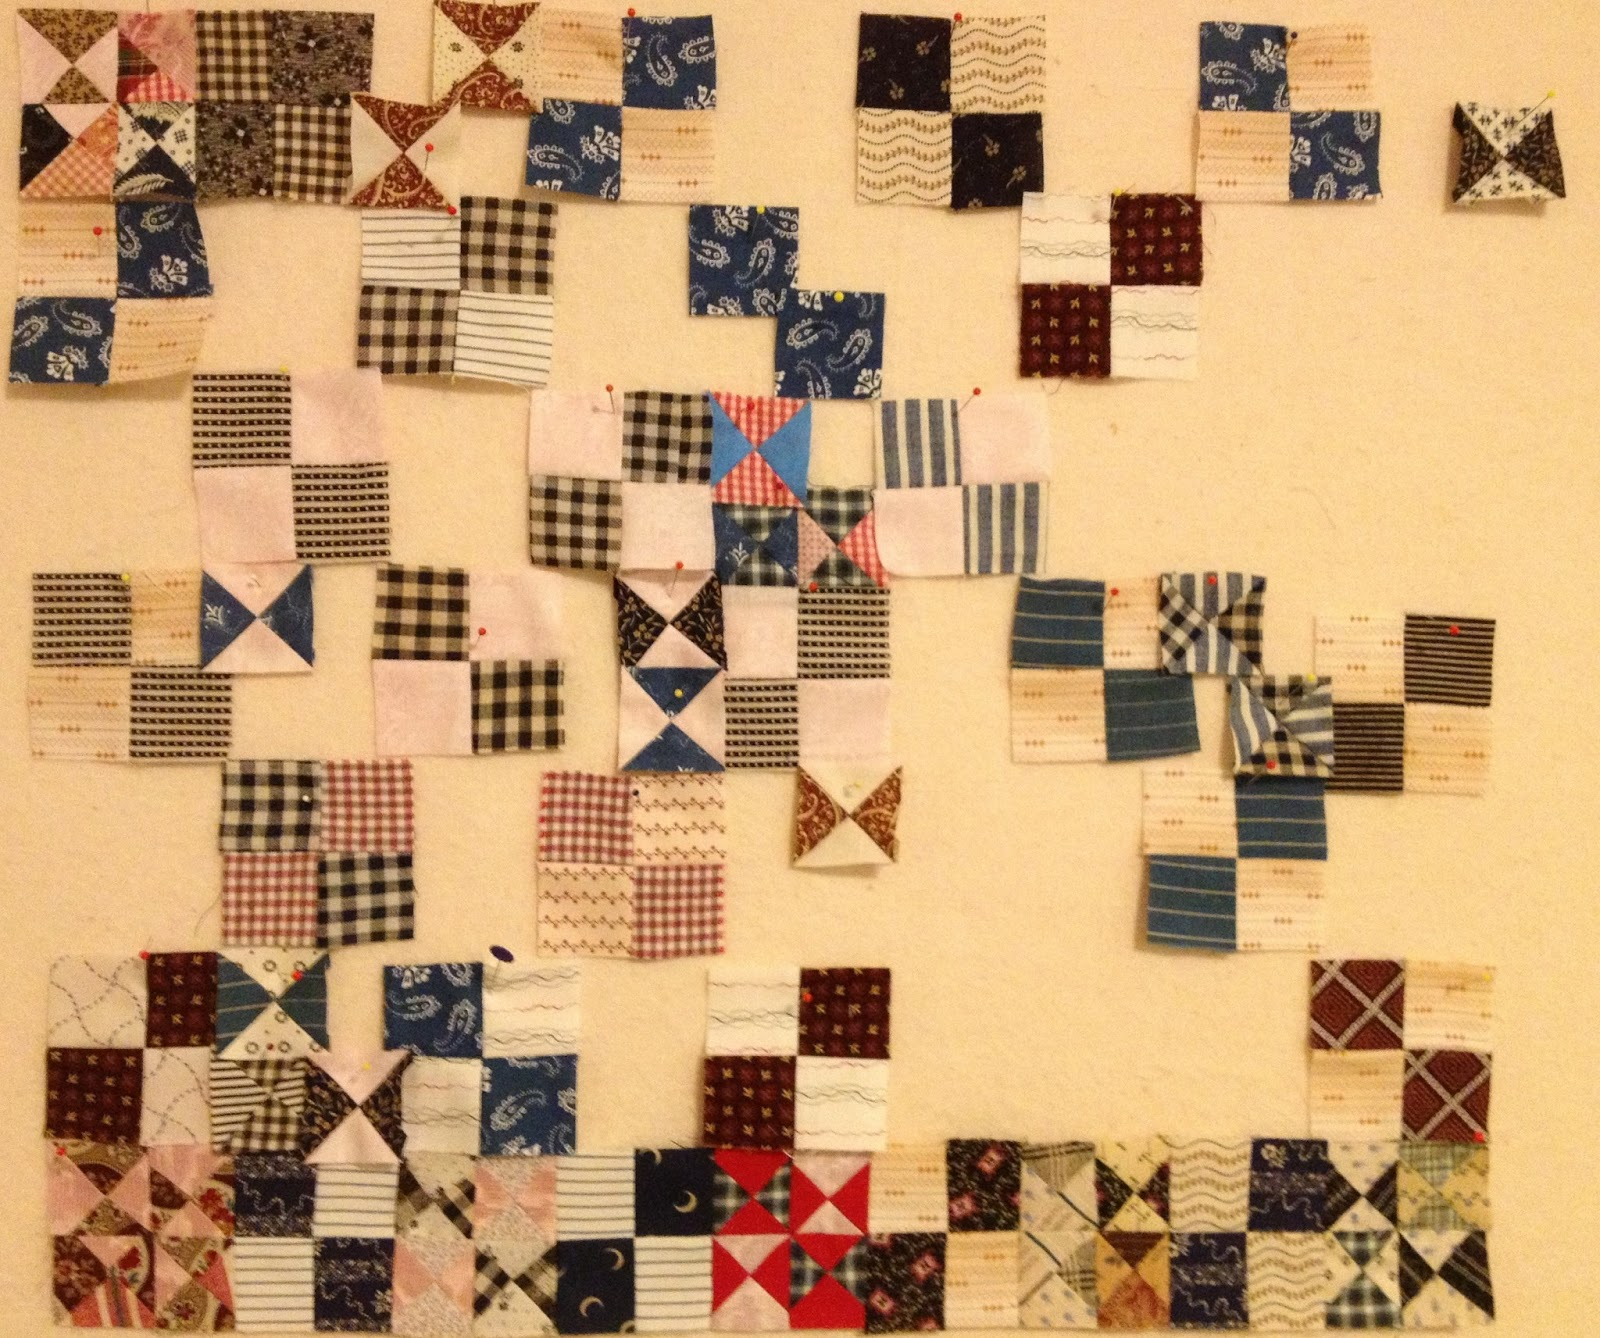 Small Quilts and Doll Quilts: Small Quilts and Redwork Quilts